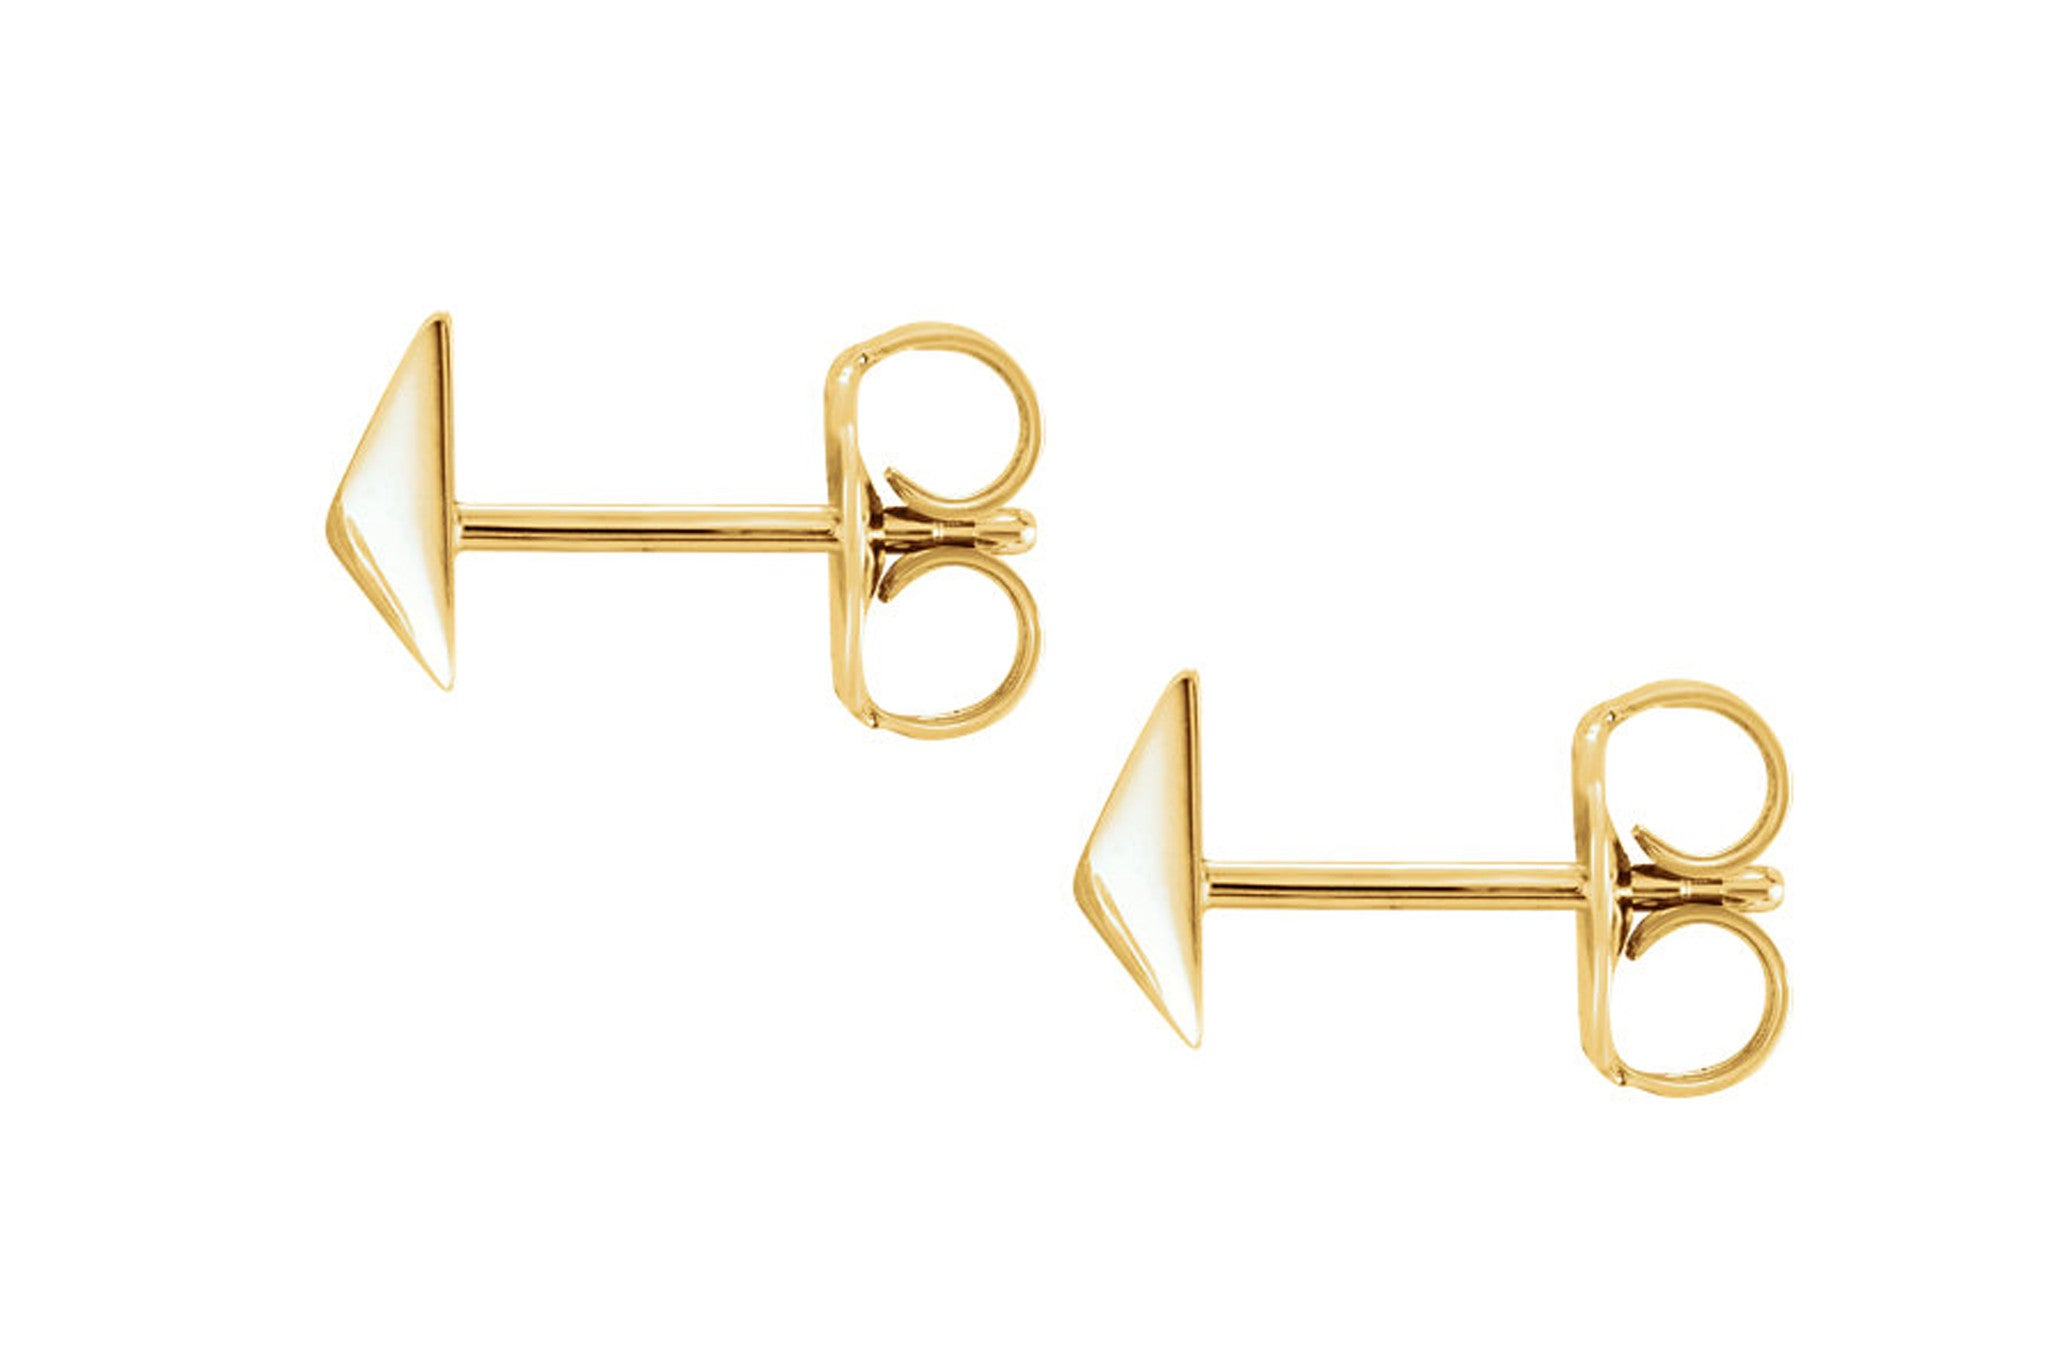 camuto com earrings gold jewelry vince plated pyramid stud dp amazon